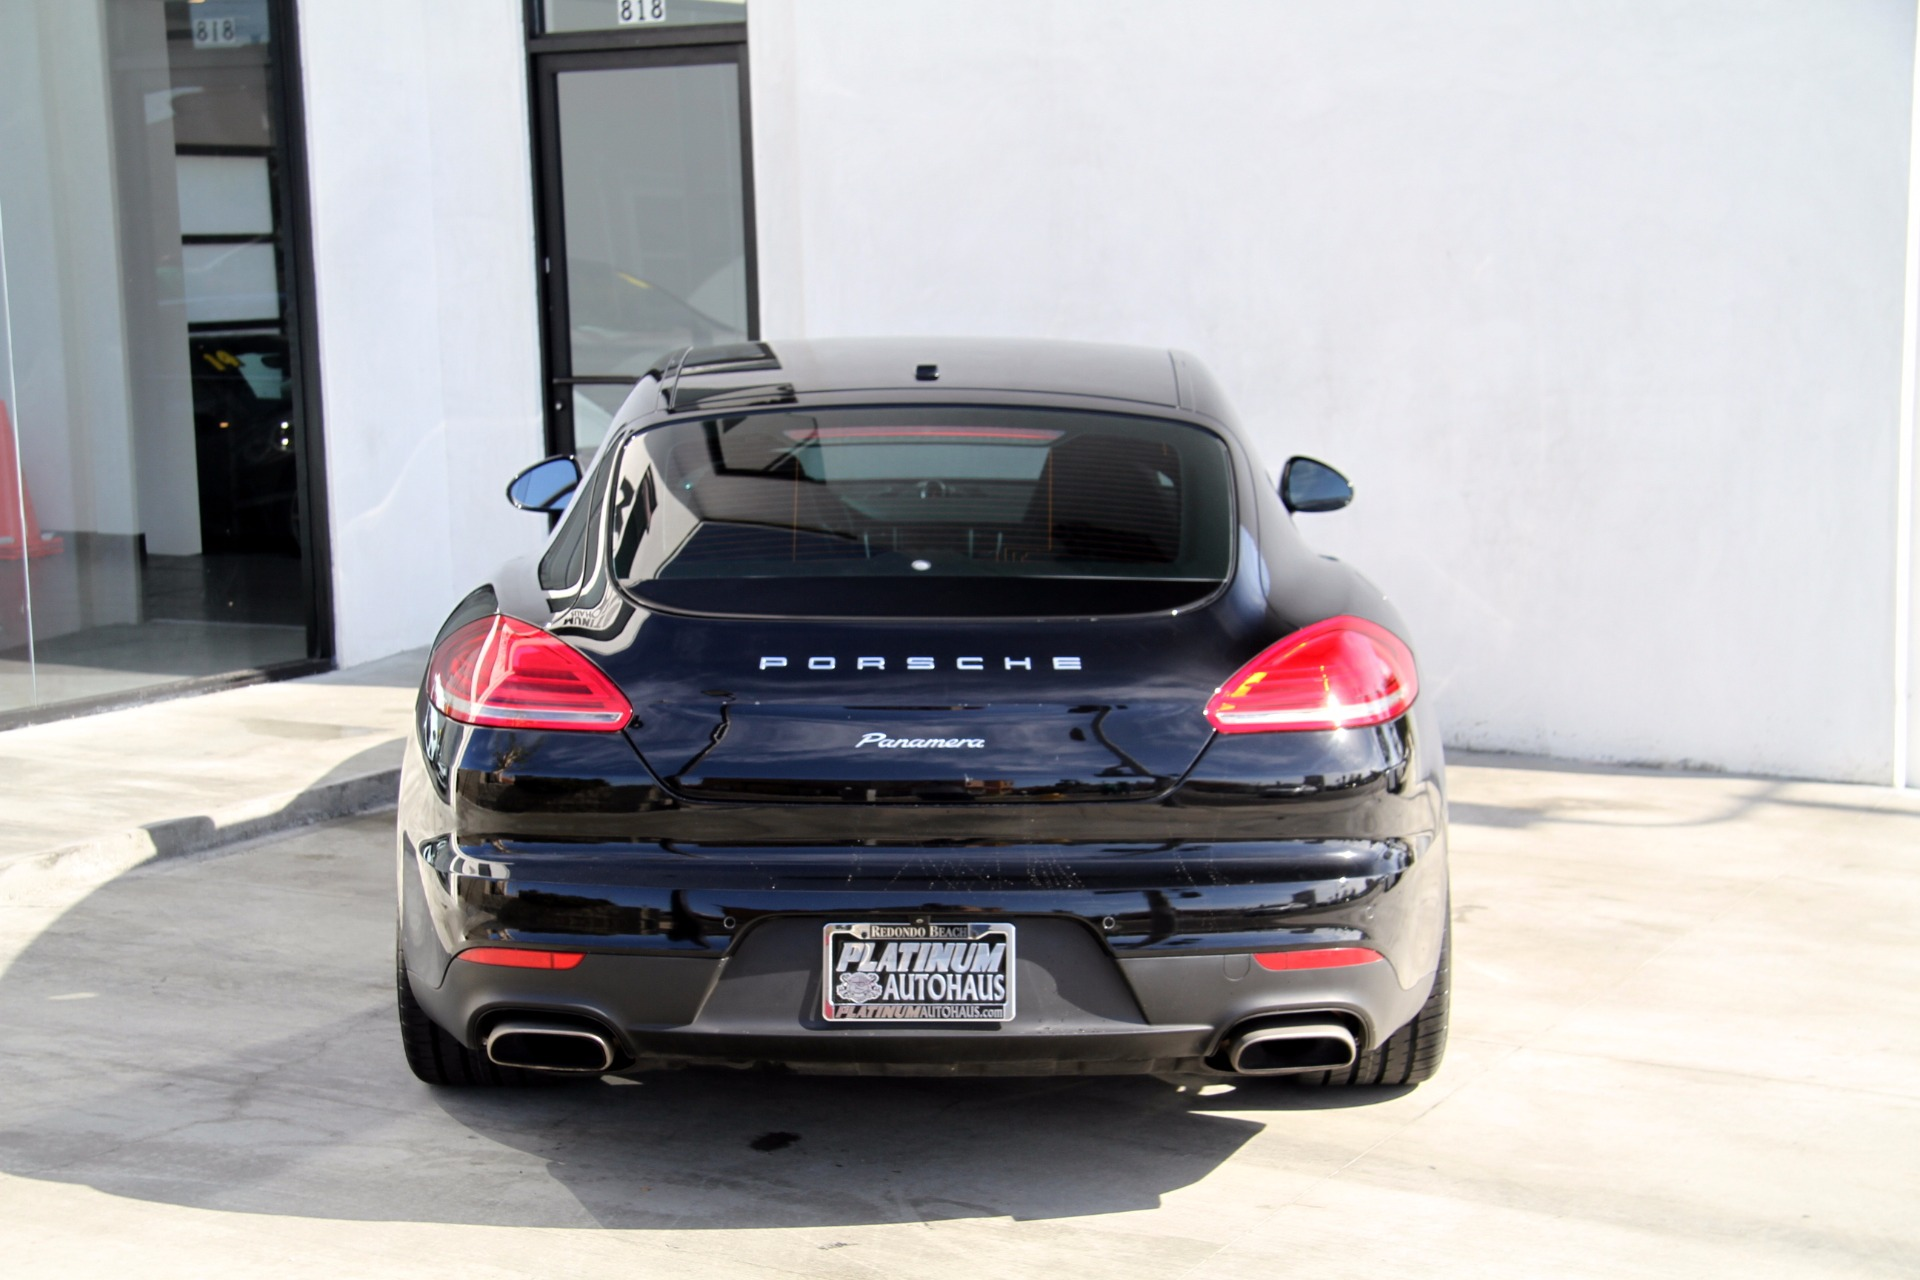 2014 porsche panamera low miles stock 6023 for sale near redondo beach ca ca porsche. Black Bedroom Furniture Sets. Home Design Ideas